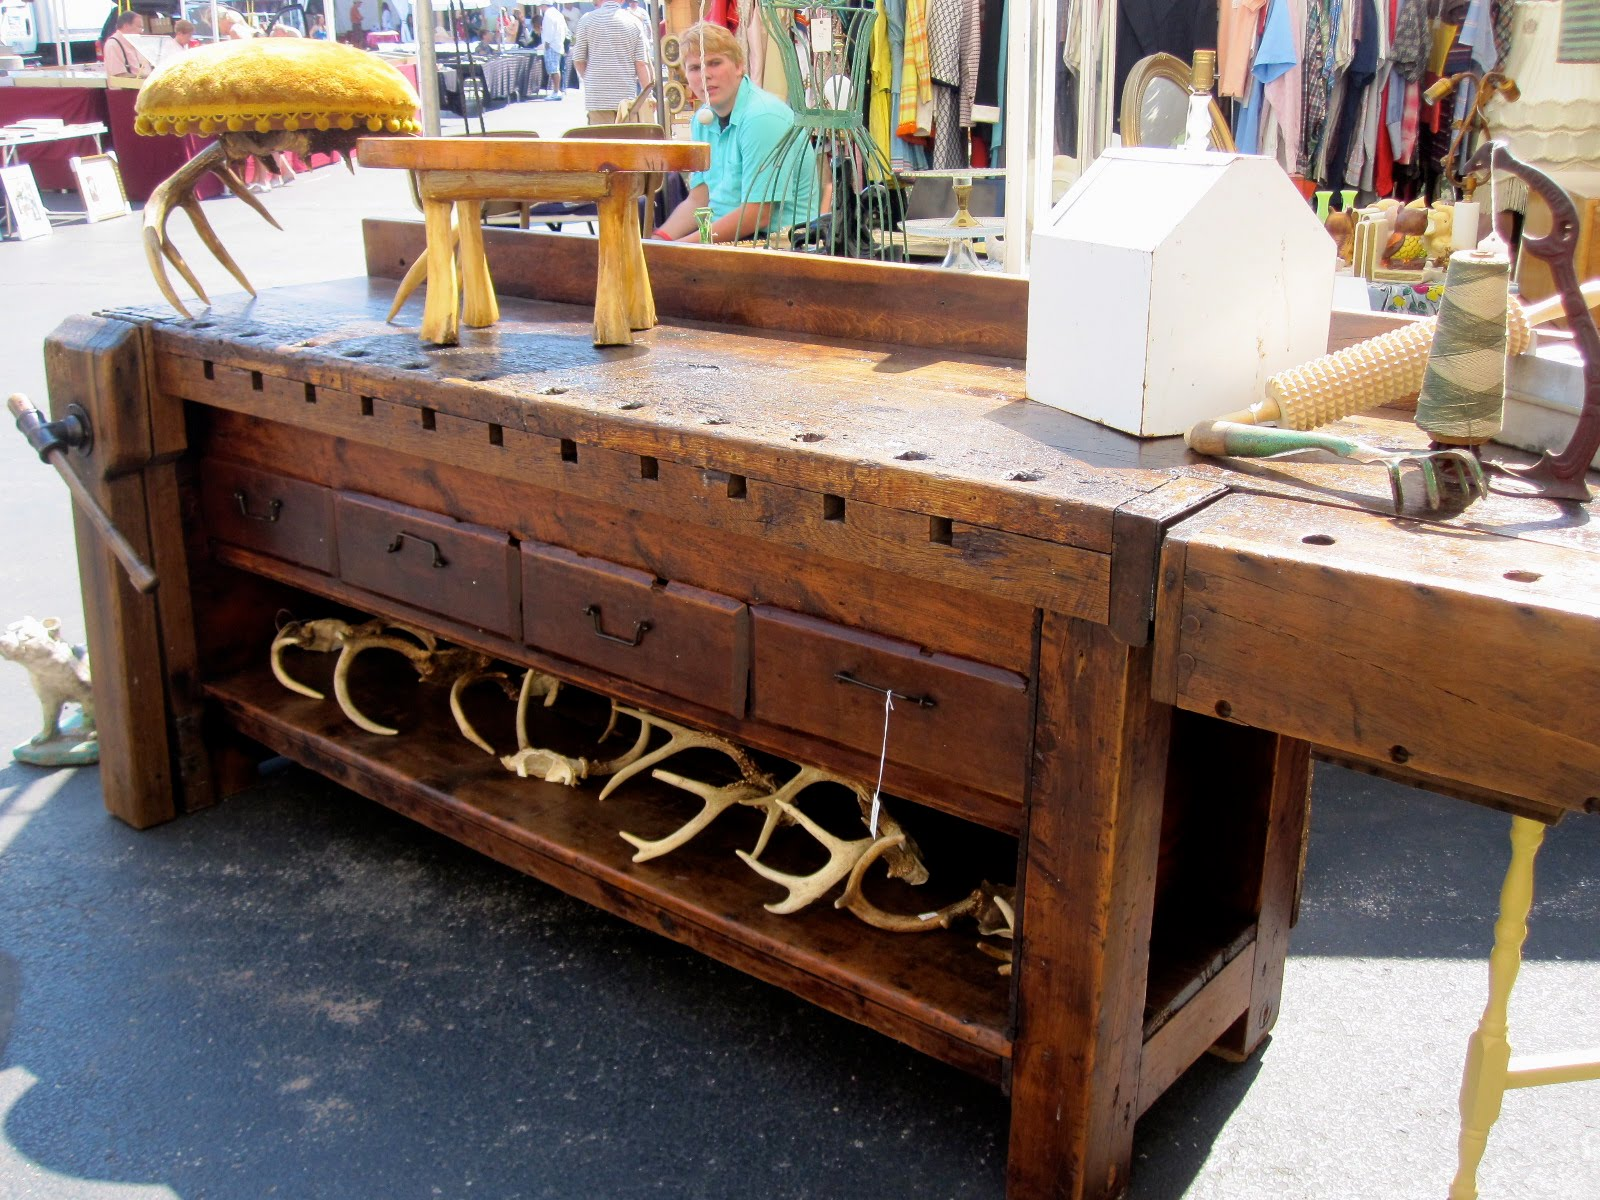 Antique Kitchen Islands For Sale Drano Sink Live Creating Yourself Trinkets And Treasures From The